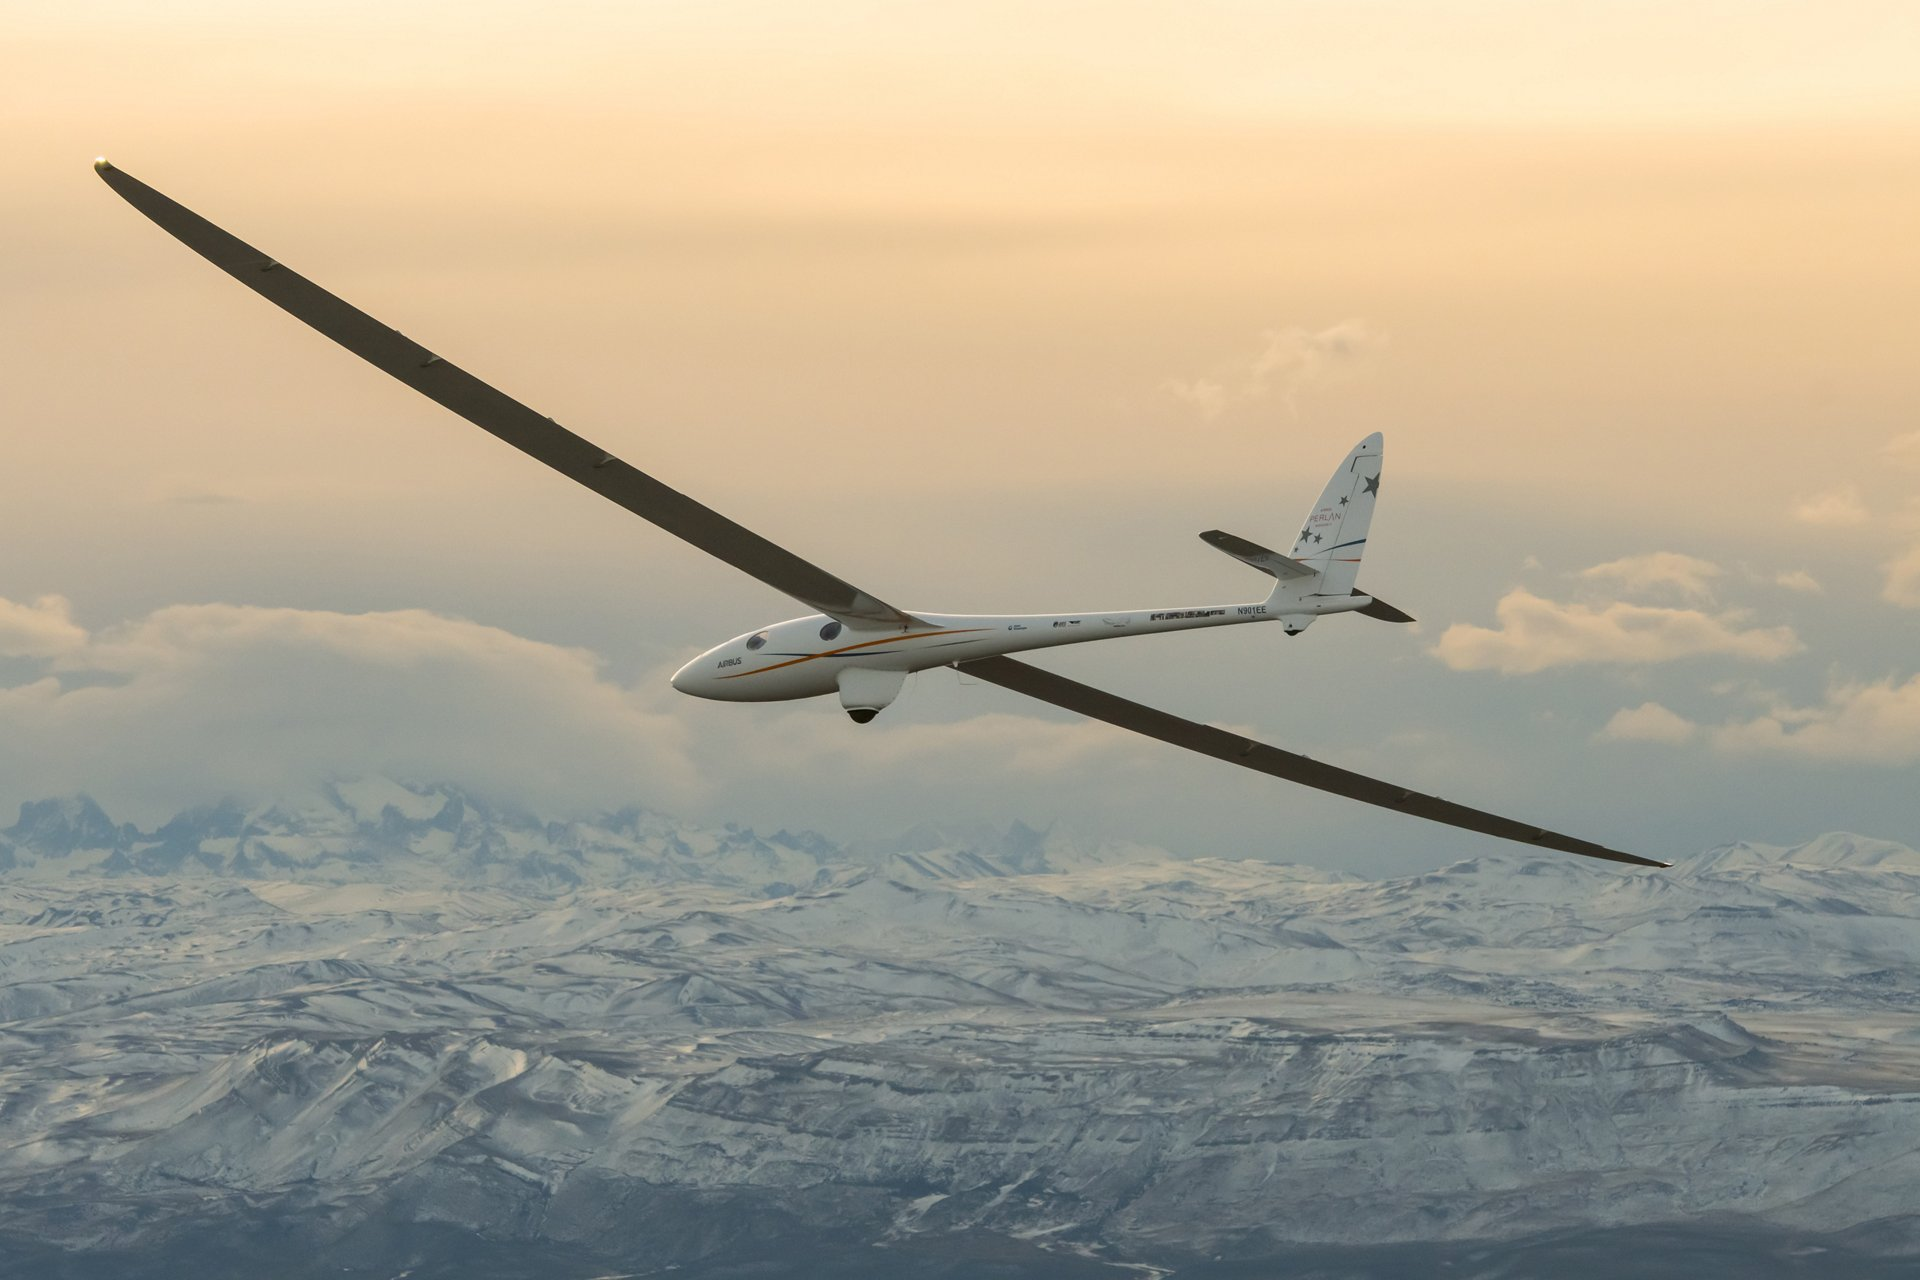 airbus perlan mission ii glider soars to 76 000 feet to break own